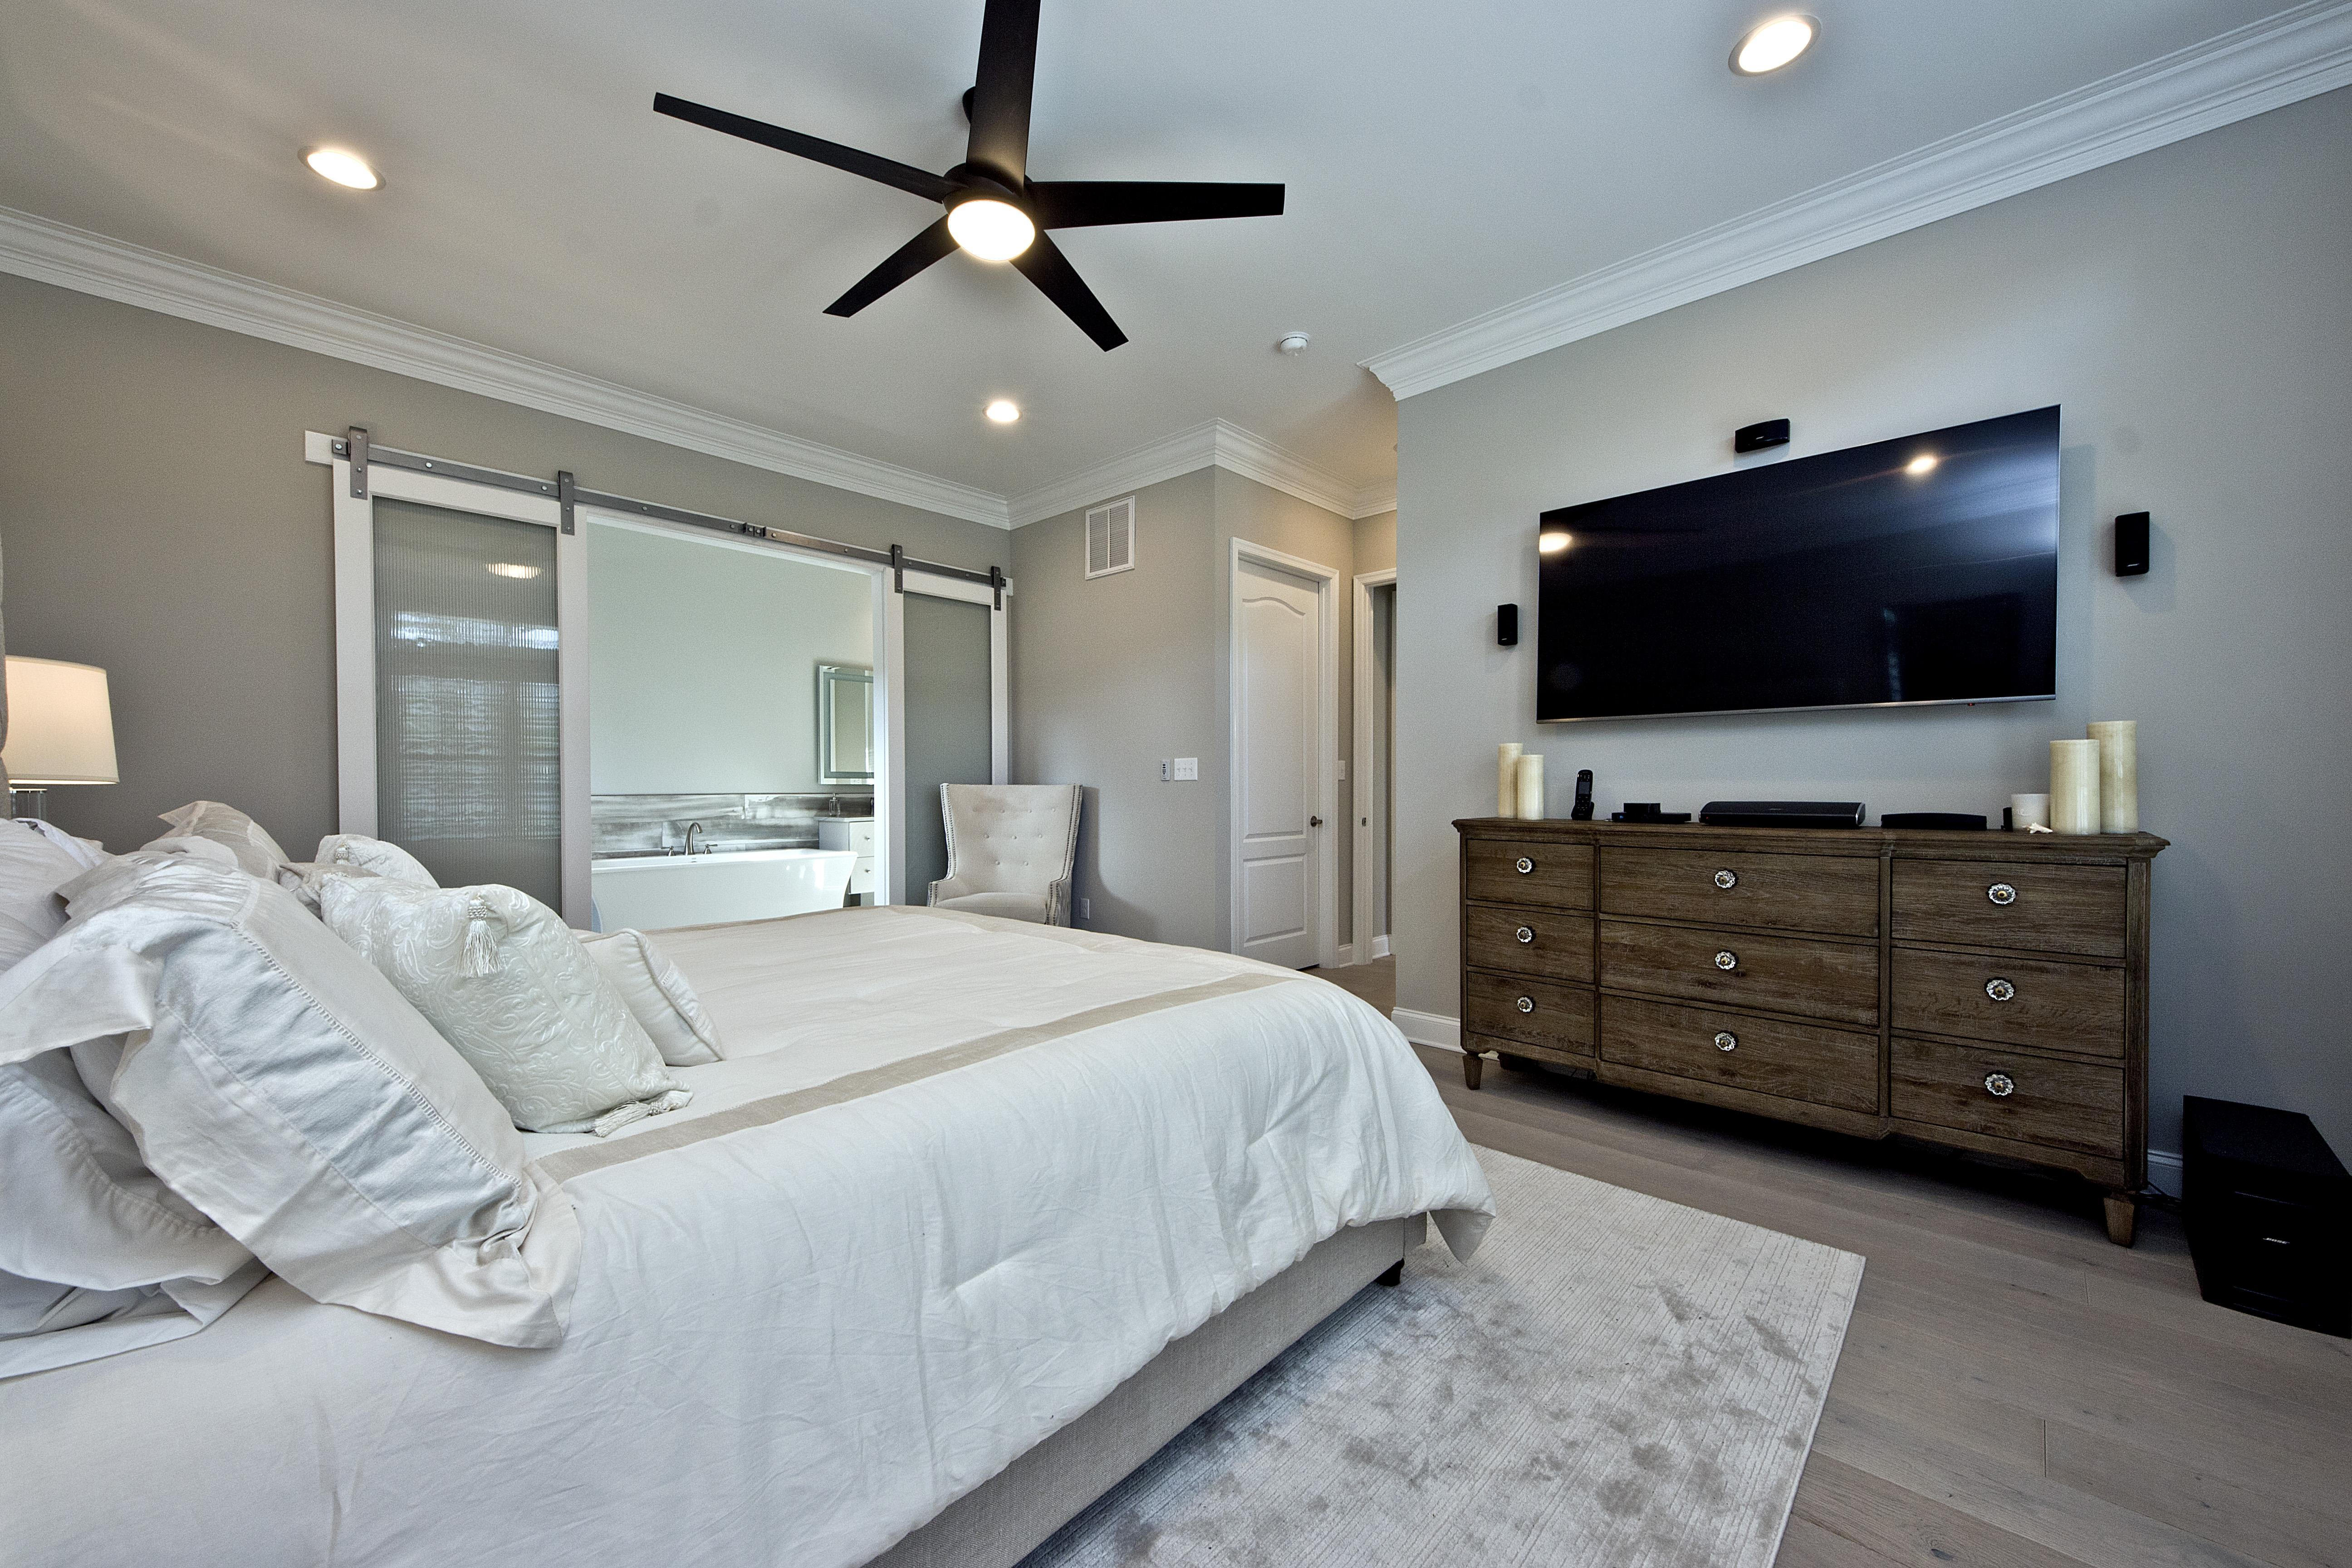 Bedroom featured in The Georgetown By Ashburn Homes in Sussex, DE